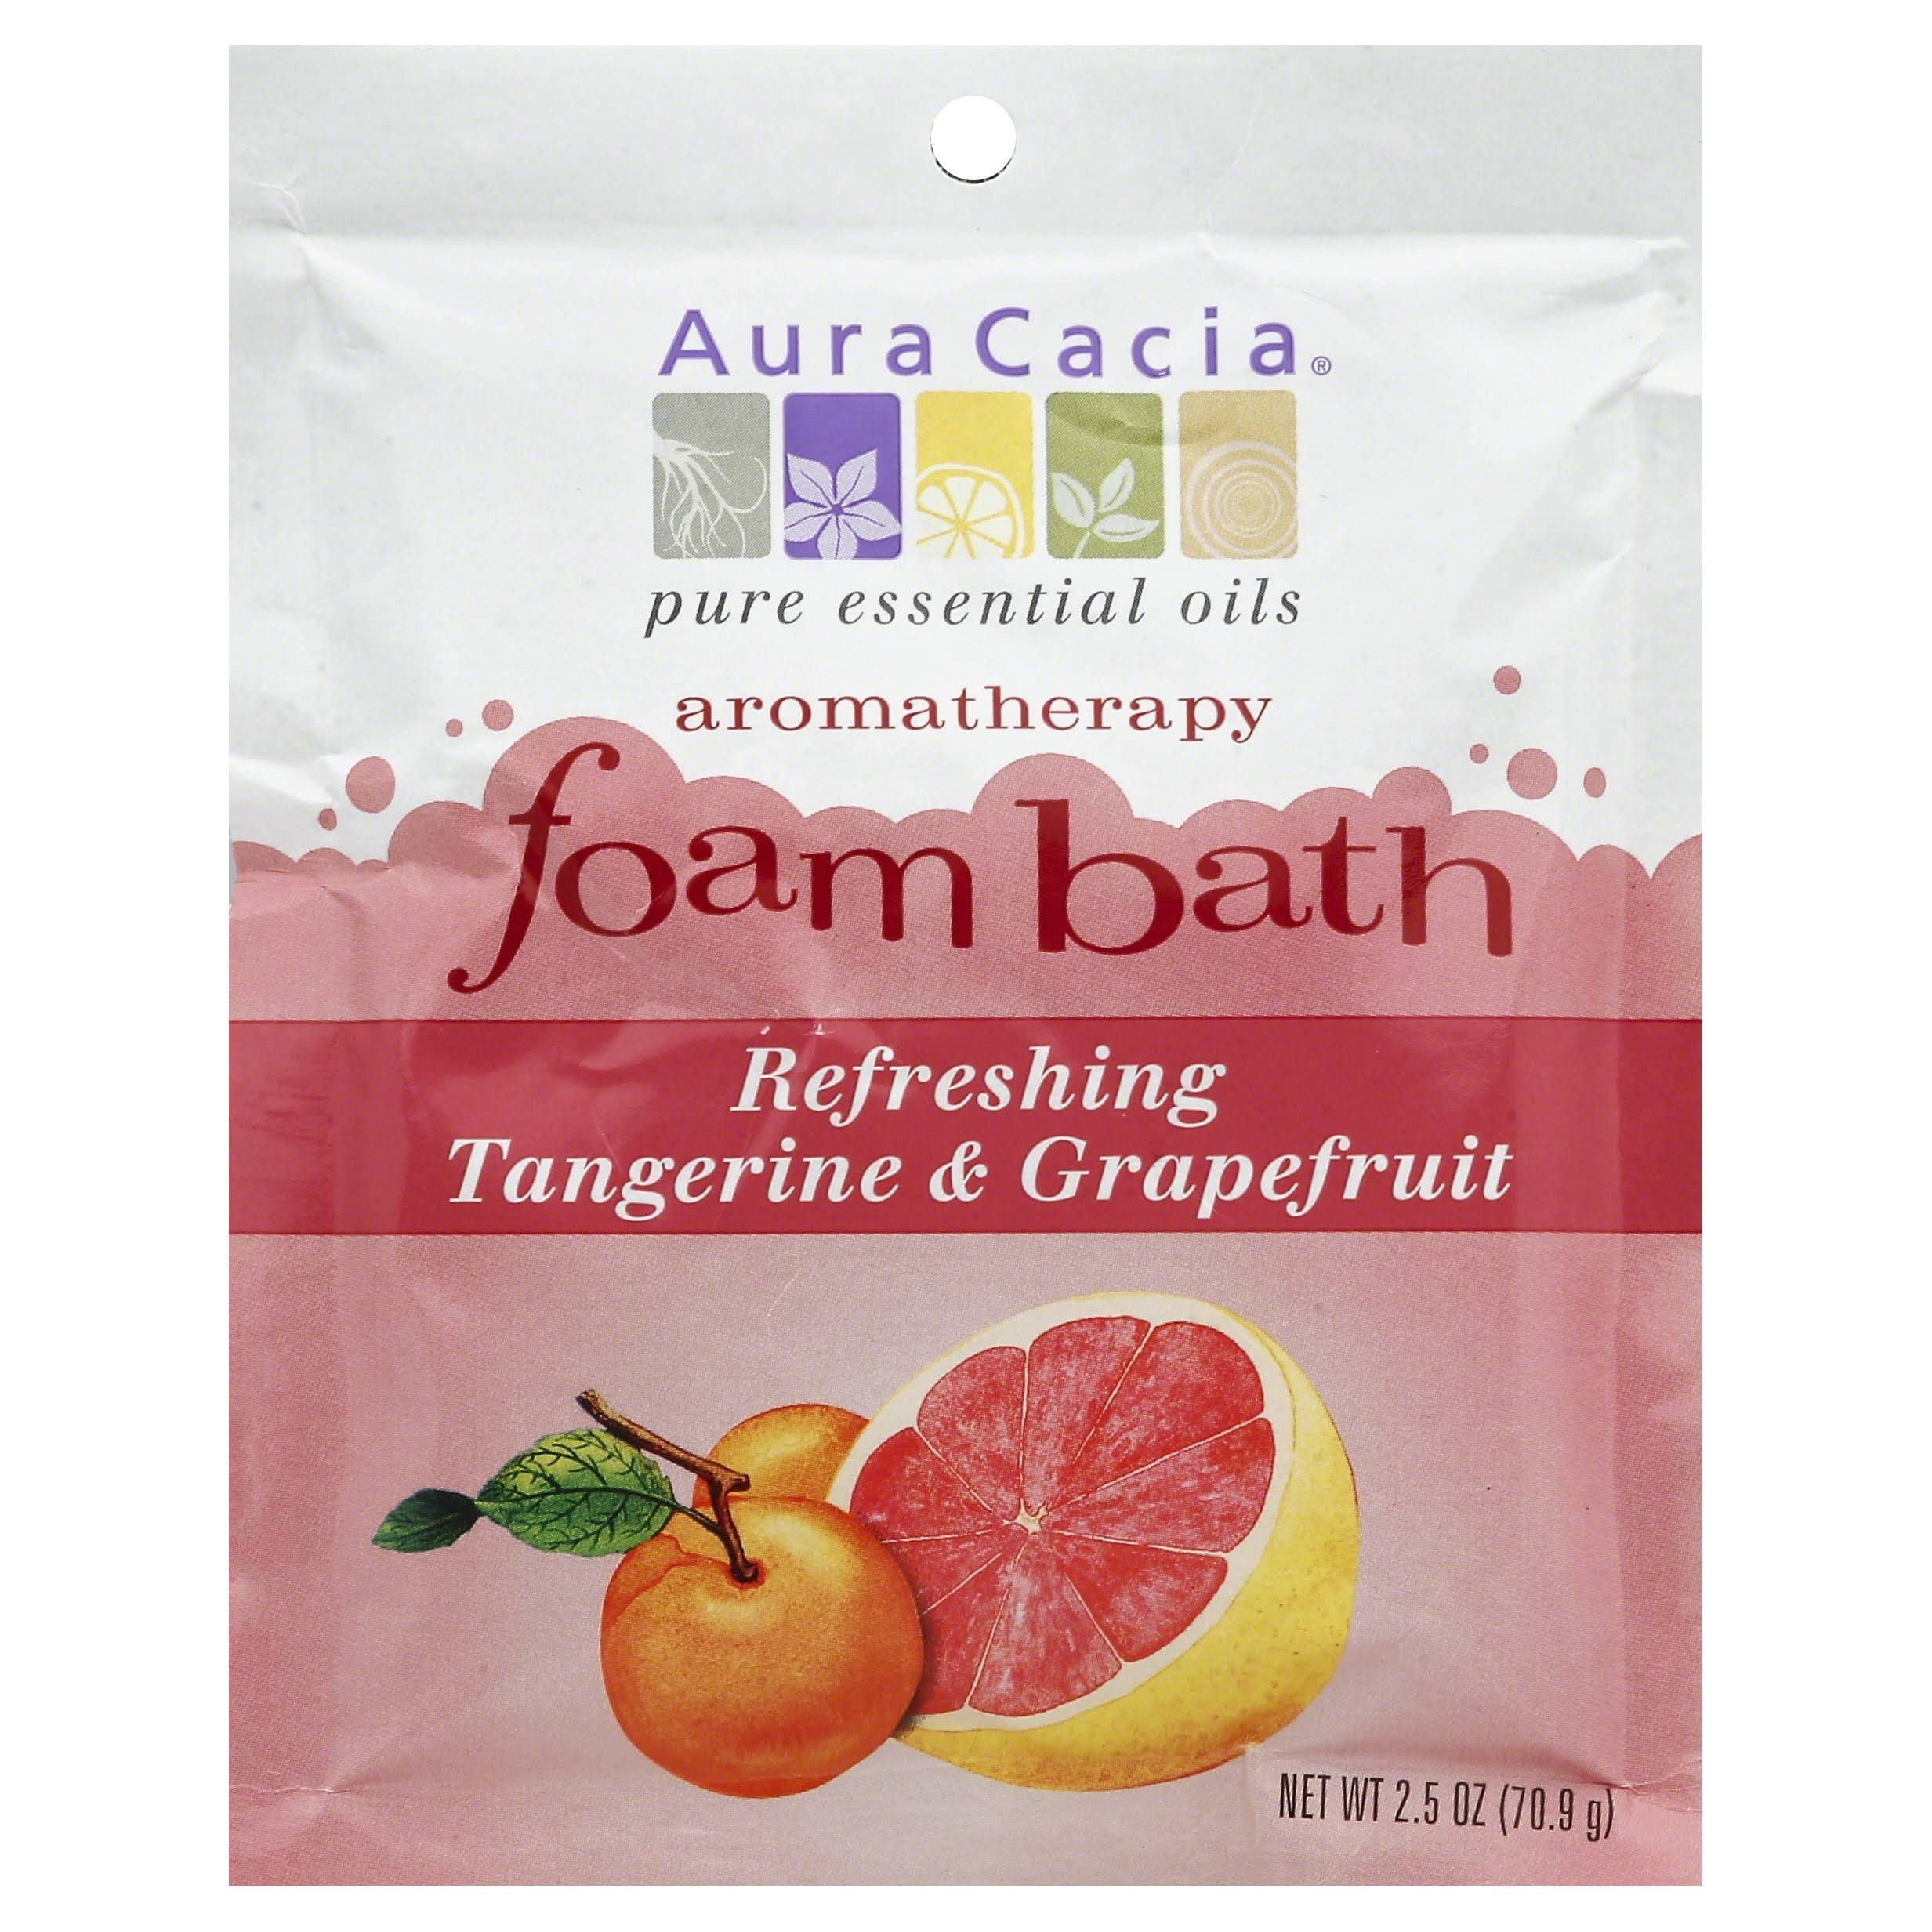 Aura Cacia Aromatherapy Foam Bath - Refreshing Tangerine and Grapefruit, 2.5oz